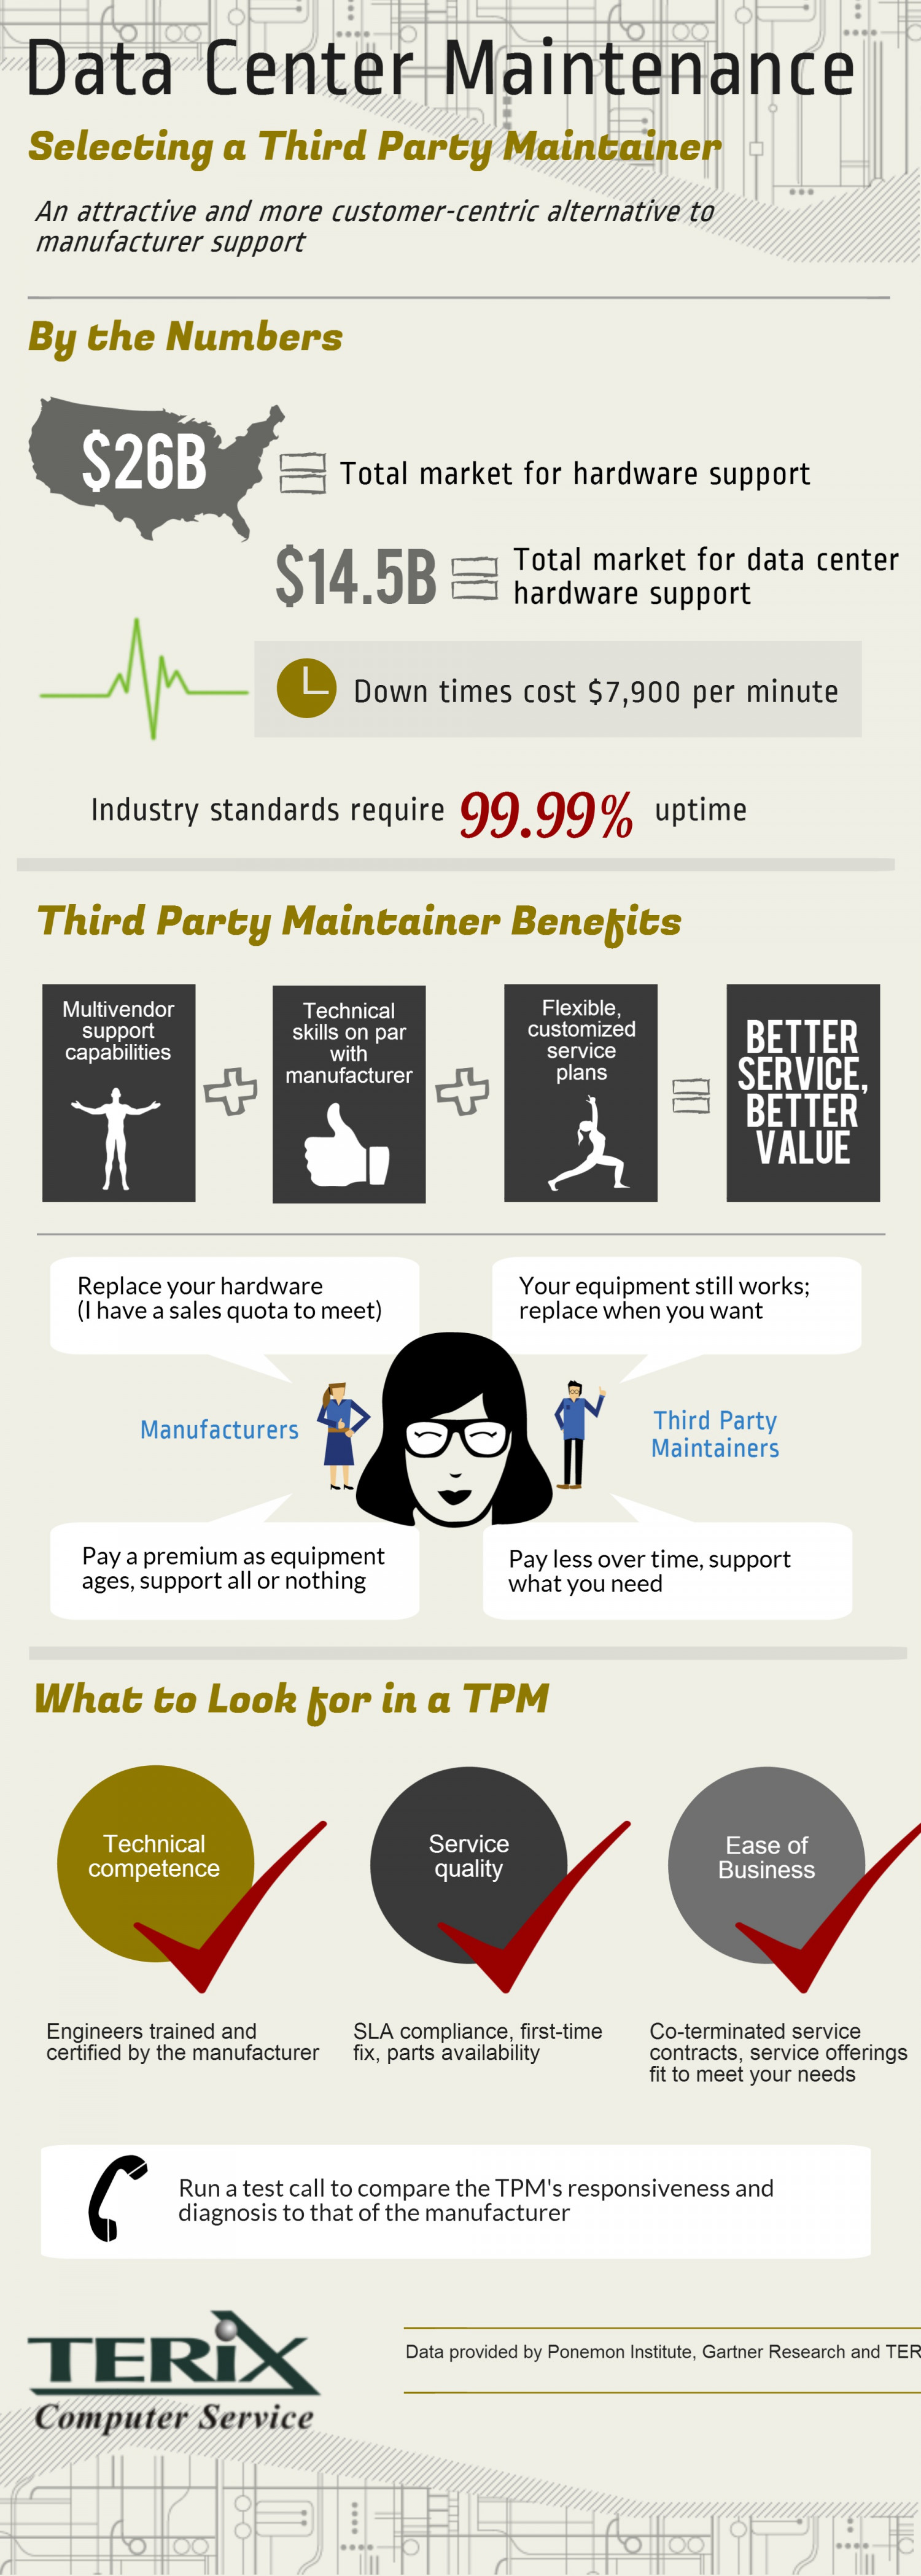 Data Center Maintenance: Selecting a Third Party Maintainer Infographic